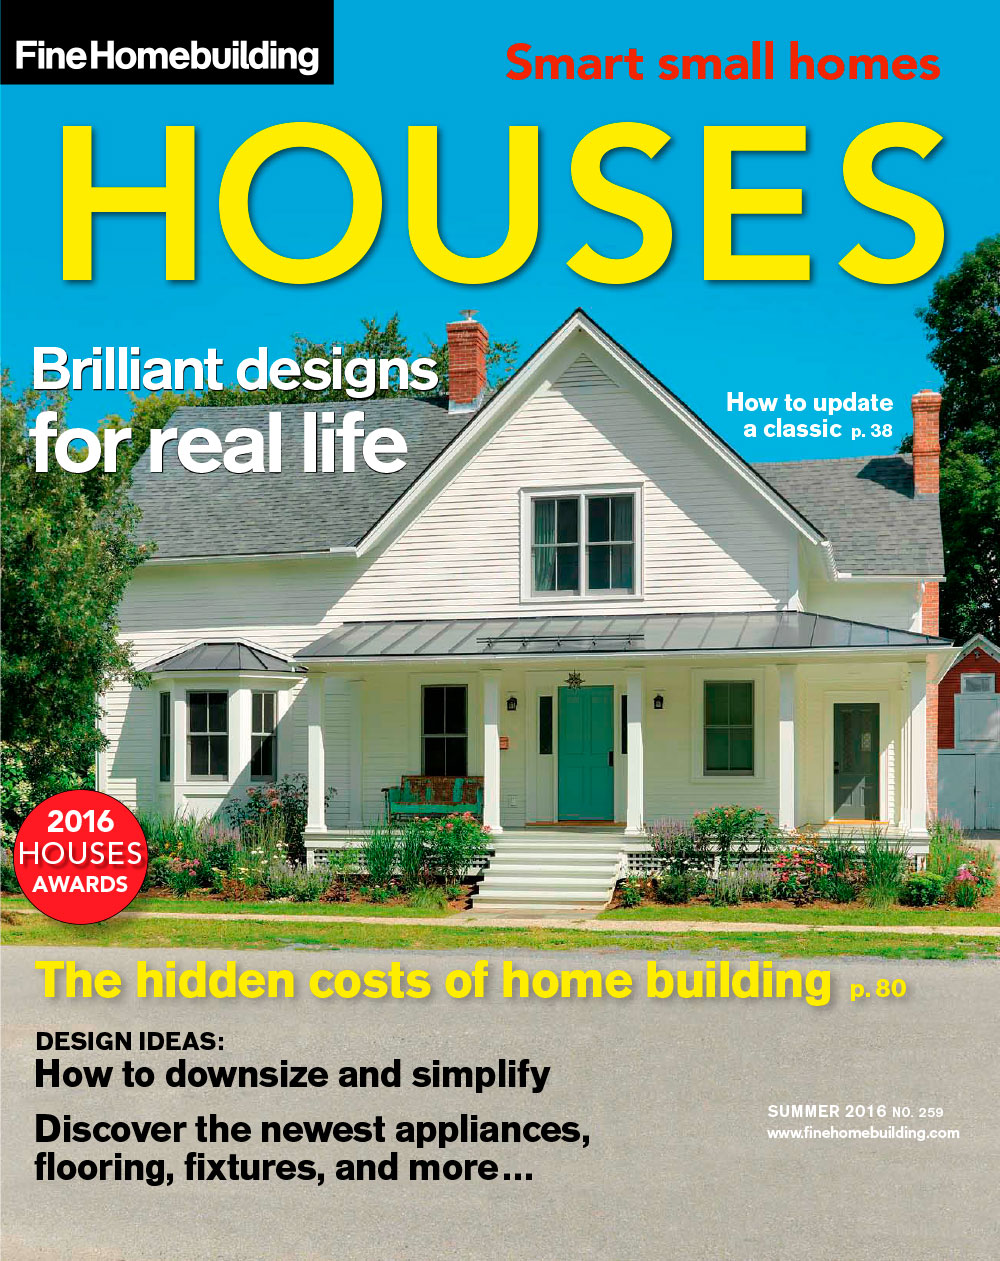 Issue 259 houses 2016 fine homebuilding for Home building magazines